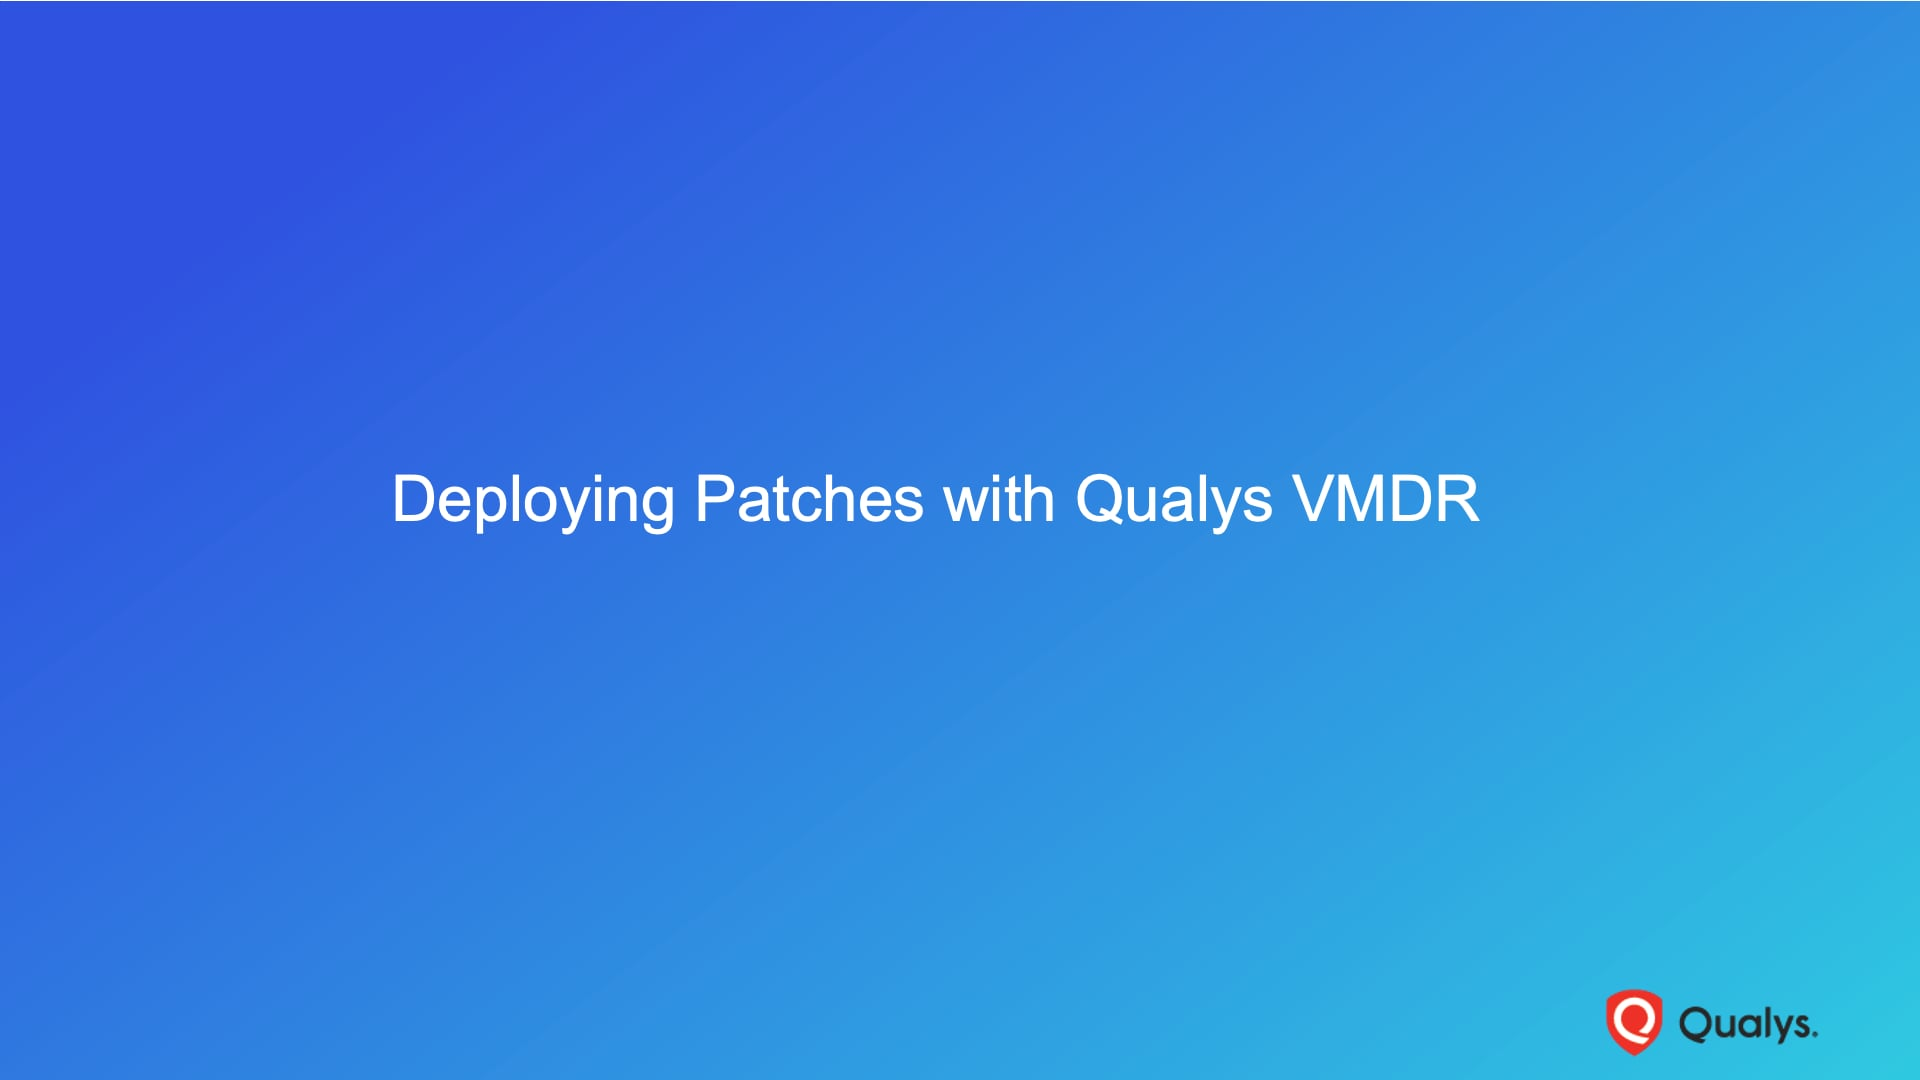 Deploying Patches with Qualys VMDR